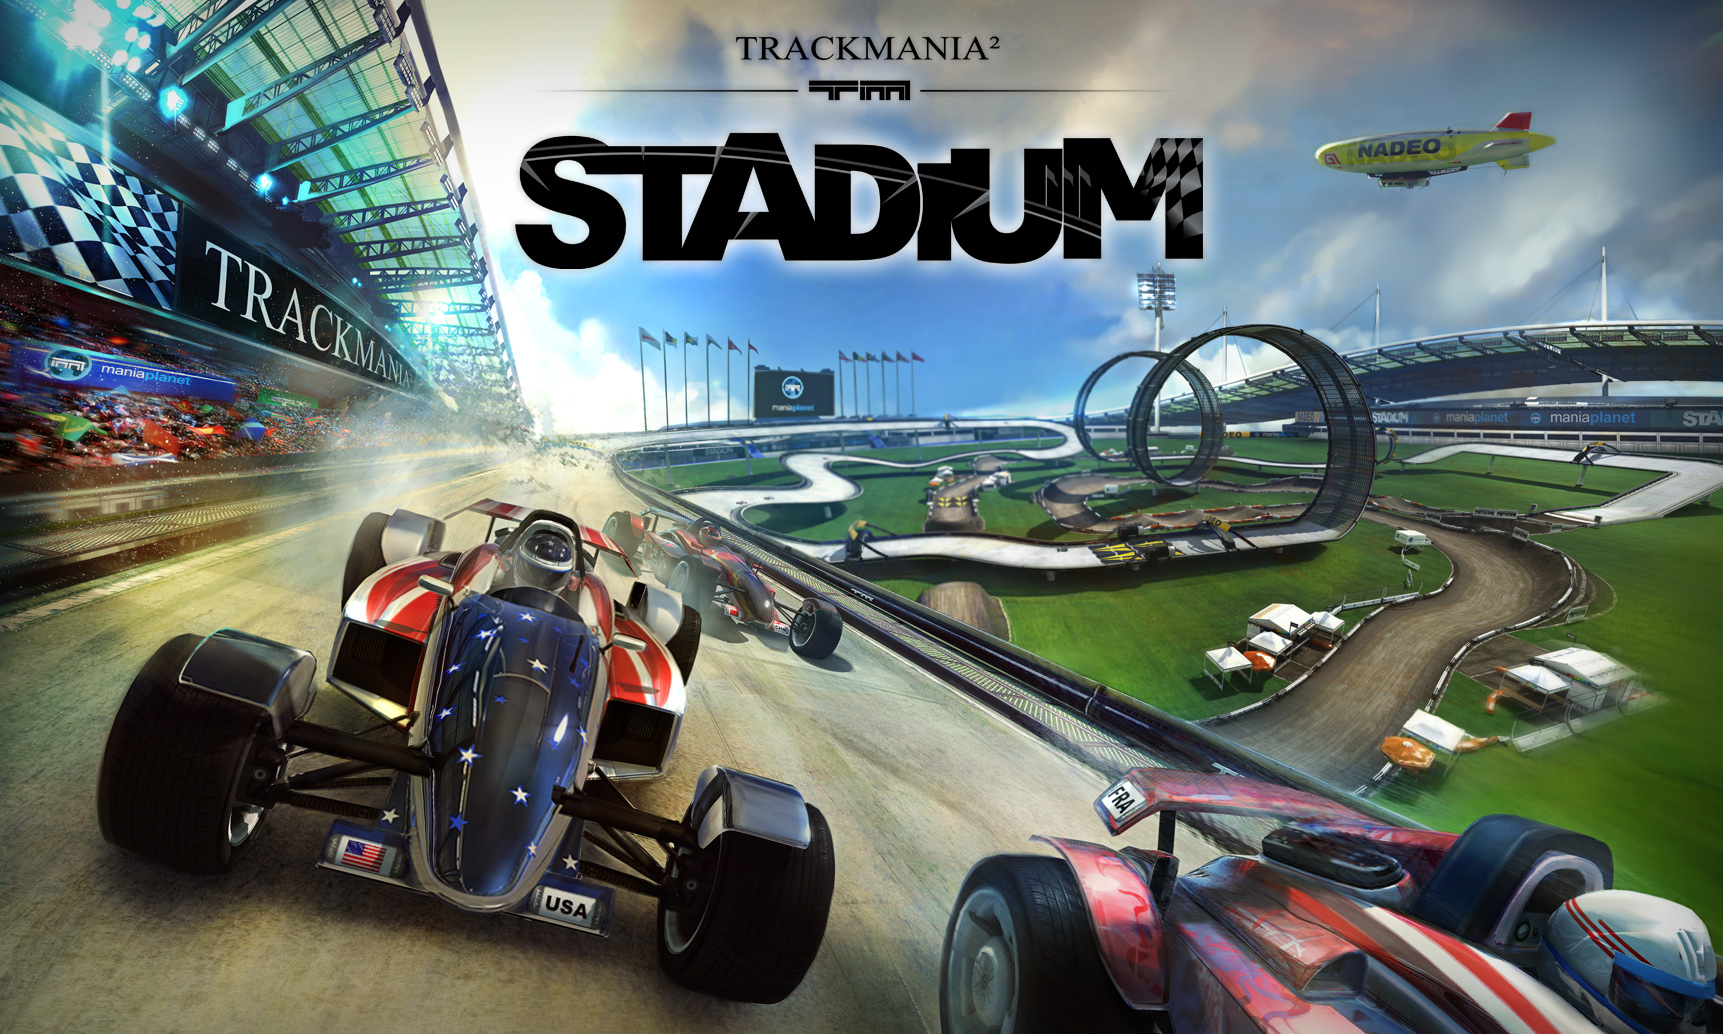 trackmania stadium dad 39 s gaming addiction. Black Bedroom Furniture Sets. Home Design Ideas